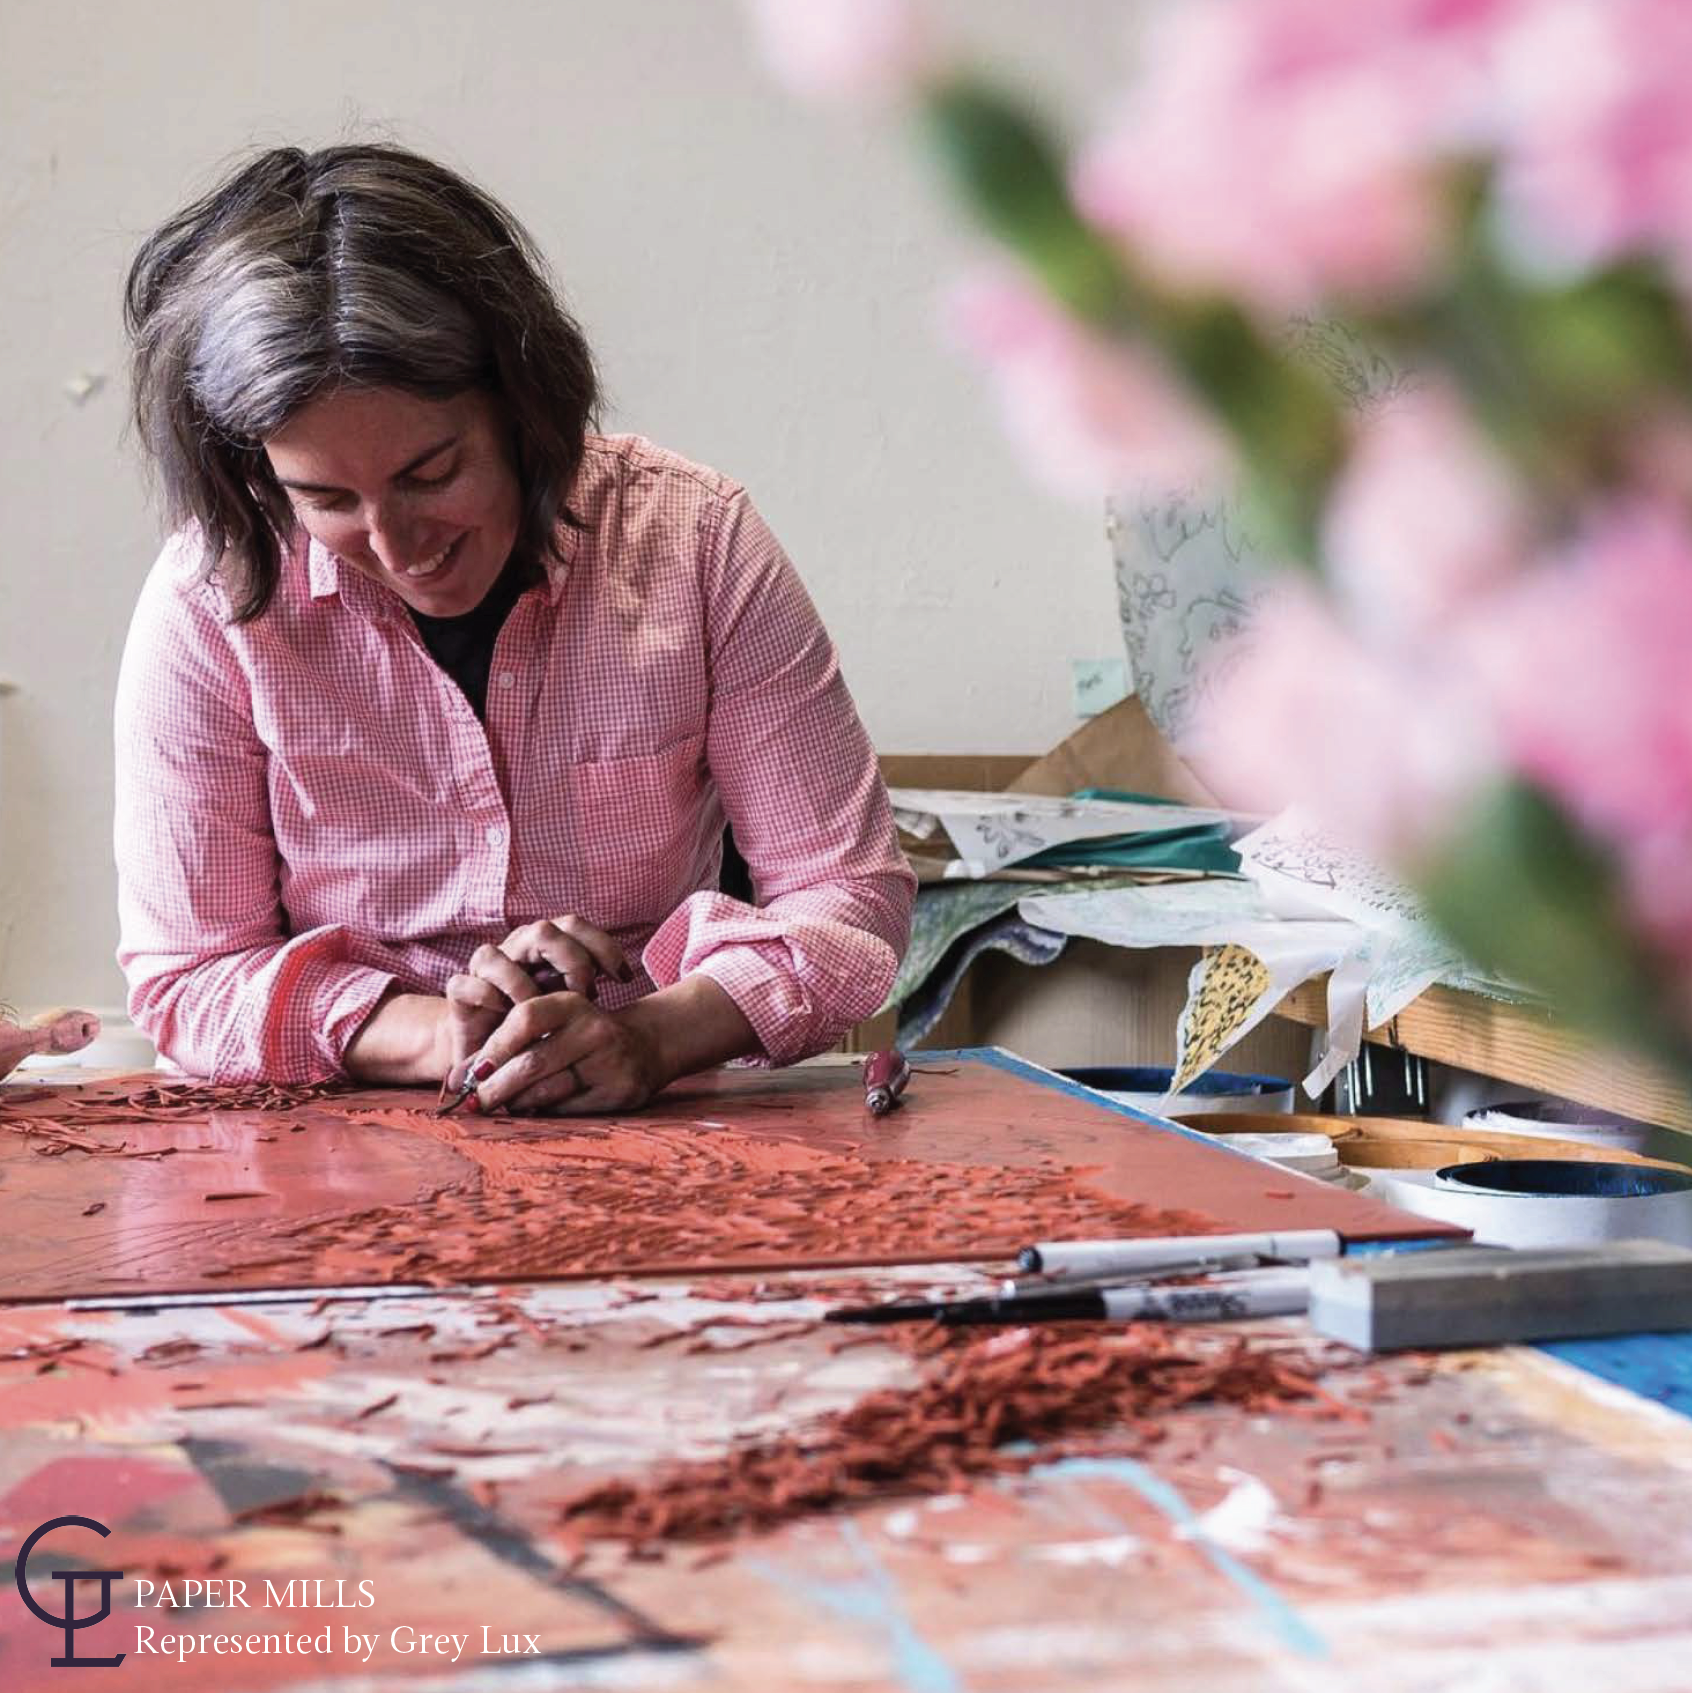 - Local Grass Valley artist and wallpaper designer, Amy Mills, offers a custom wallpaper product that can be tailored to meet any project needs.Each pattern from Paper Mills expansive wallpaper collection can be Benjamin Moore / Pantone color and sheen specified.Amy also offers and encourages bespoke custom wallpaper collaborations; perfect to replace a discontinued favorite, or to create a personalized go-to for your library.